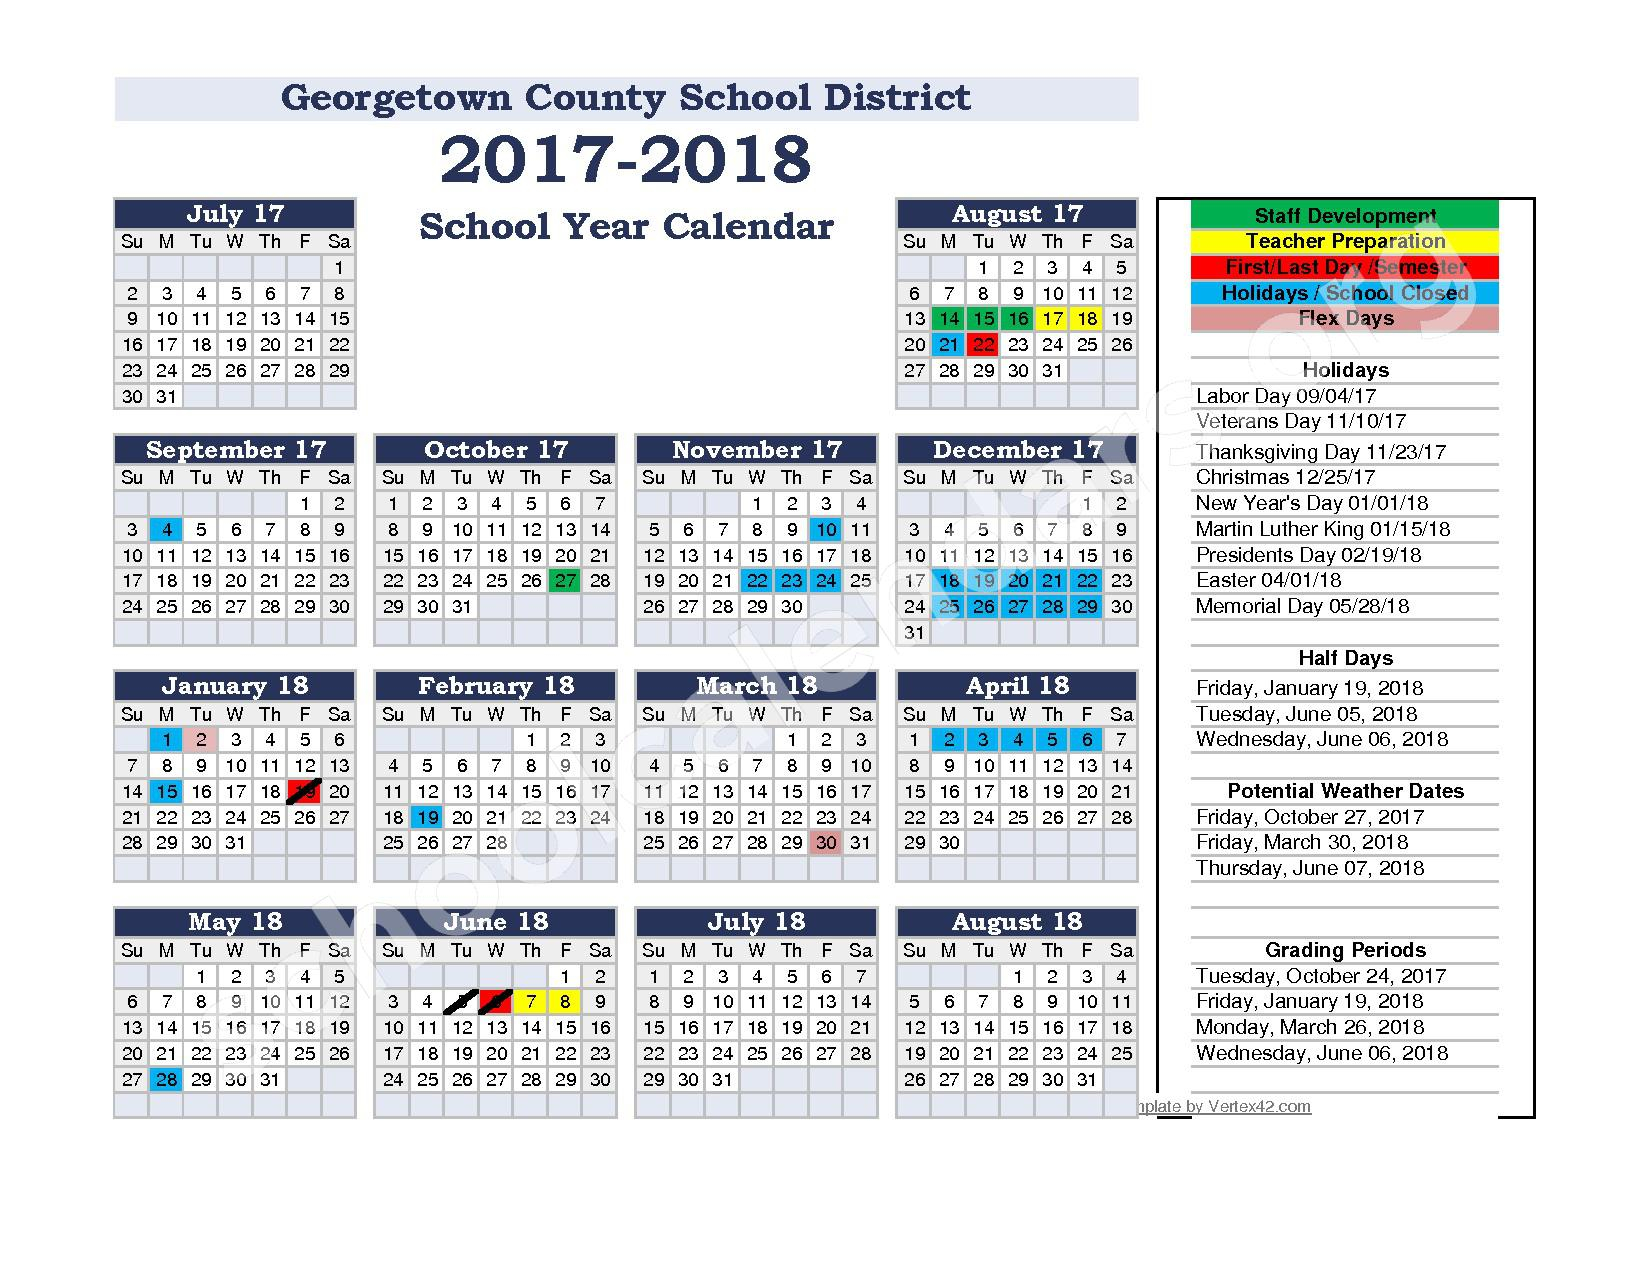 Calendars District Calendar Georgetown High School - Induced Regarding Georgetown County School District Calendar